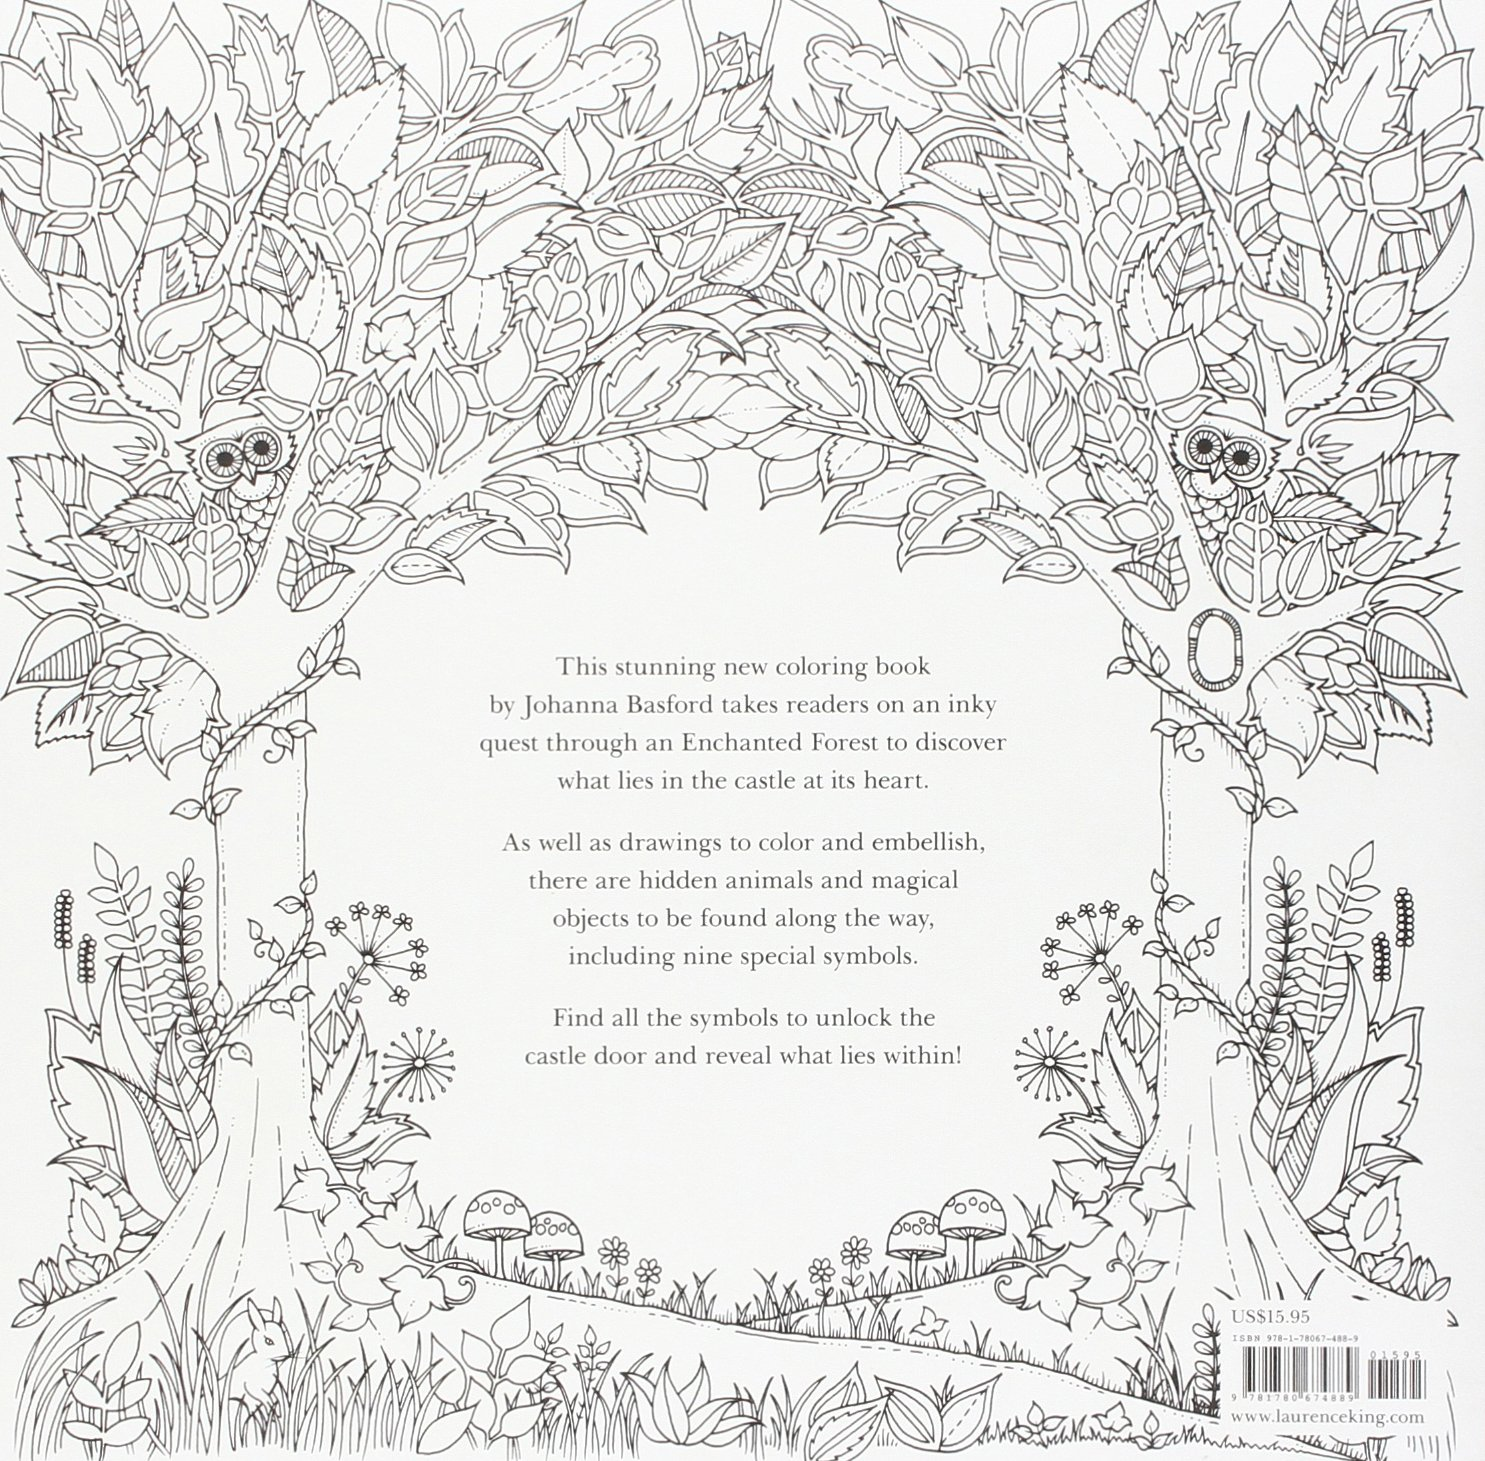 Enchanted forest coloring book website -  Enchanted Forest Coloring Book An Inky Quest